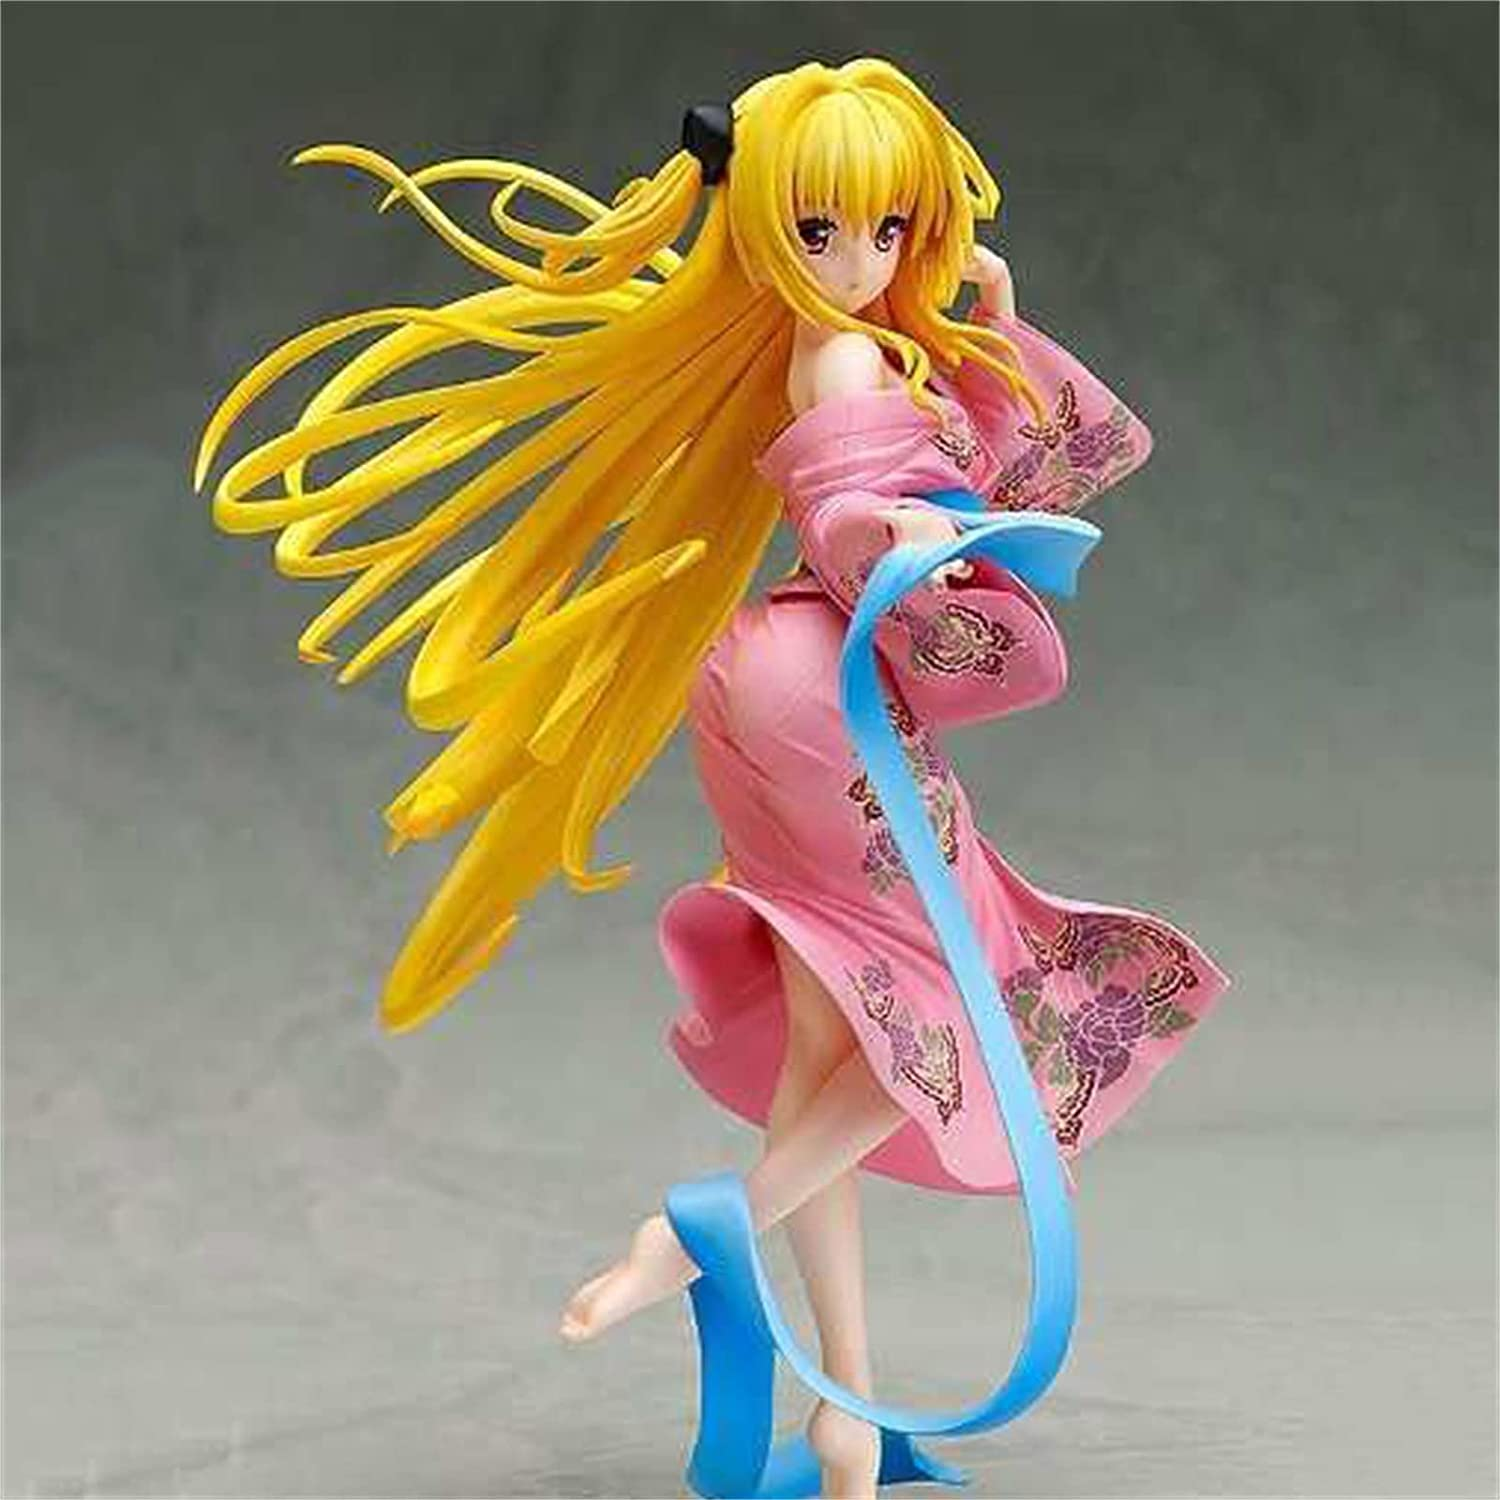 ZZQYY Ranking TOP8 2021 autumn and winter new CERen to Love Figure - Darkness Darkness: Action Golden Ru